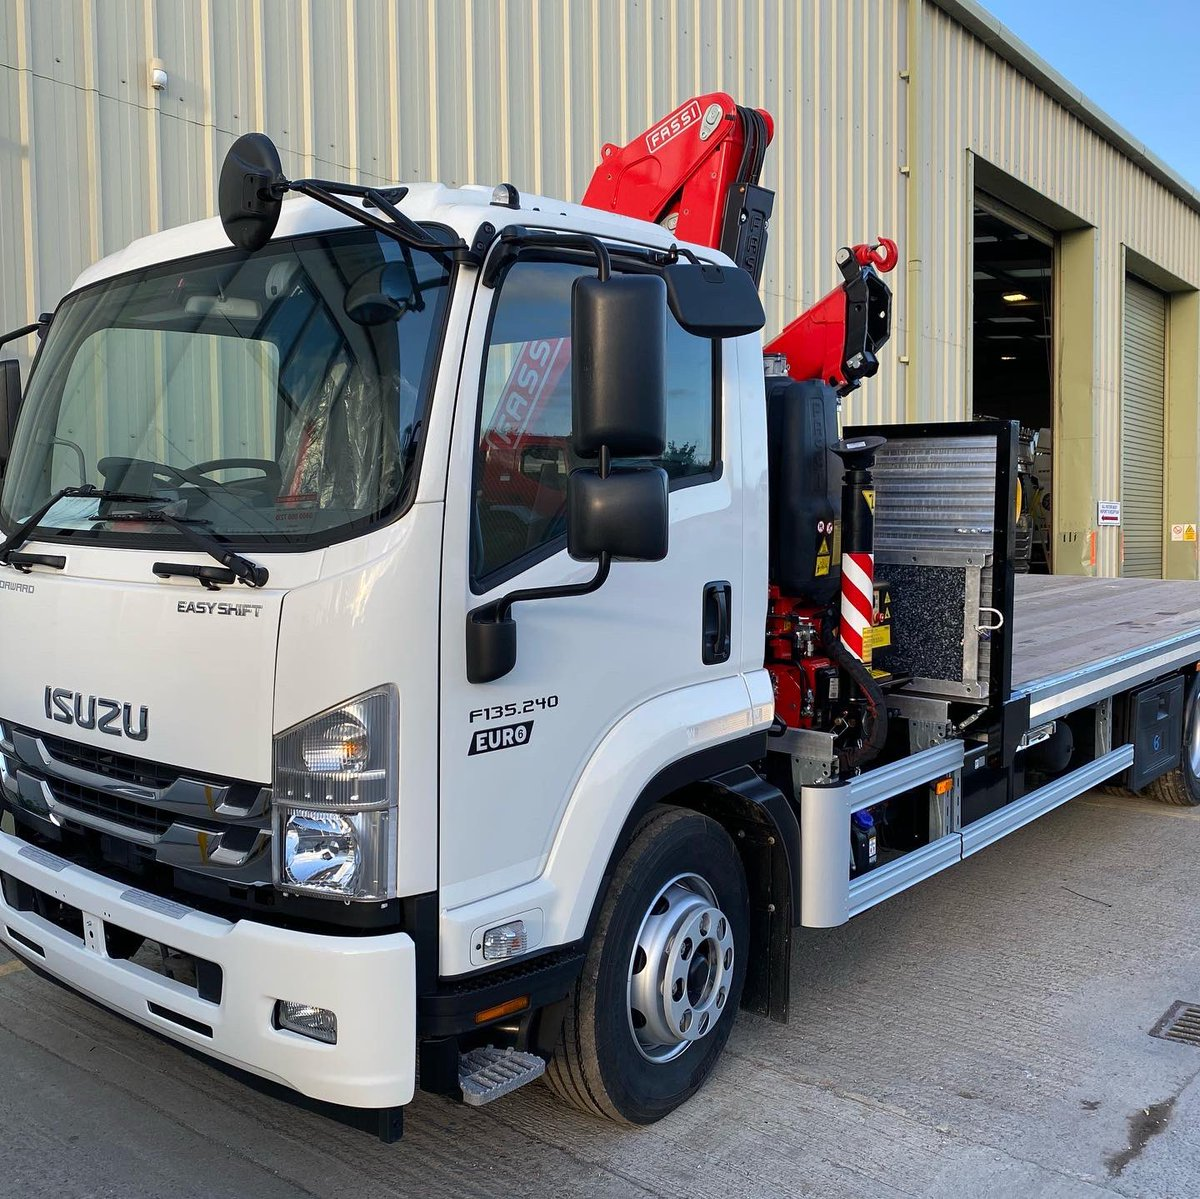 test Twitter Media - 13t Isuzu chassis with Fassi F115 crane & platform body for Joe Vertigan of Woodworks Timber Leeds. Joe needed an additional crane vehicle & has been a pleasure to work with. Chassis supplied by Adrain Gill @jdstrucks and crane by Oliver Hallas of Central Crane Technicians. https://t.co/9PzjV1HNYY